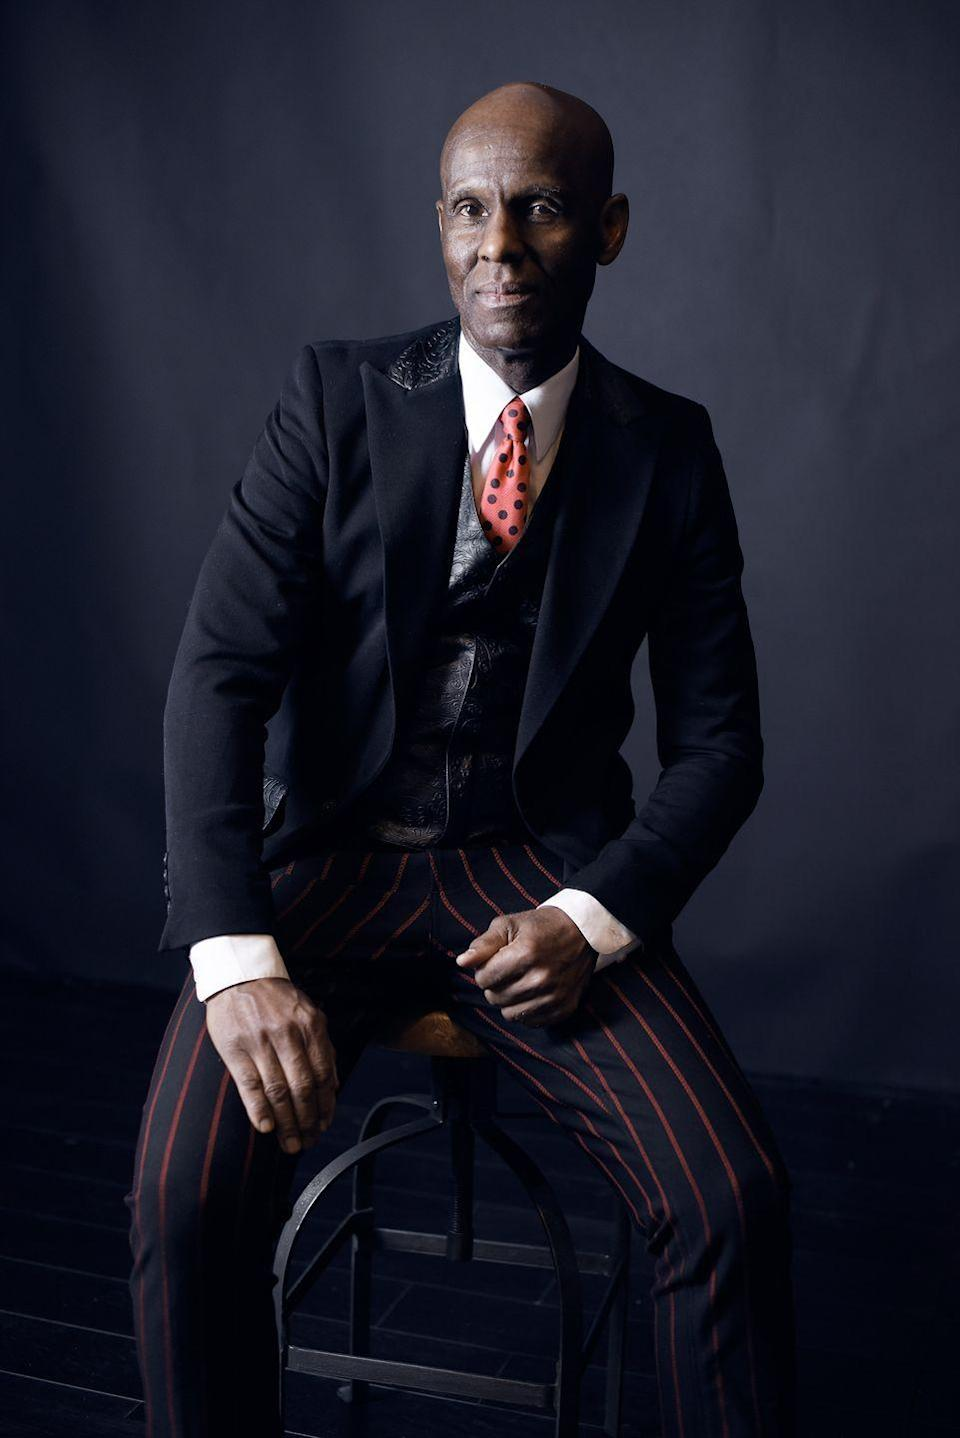 "<p>Daniel Day, who goes by Dapper Dan, is a Harlem couturier known as the king of ""knockoffs."" He made a name for himself in the late '80s when he opened his renowned Dapper Dan's Boutique in Harlem. A self taught tailor with a unique style, Dapper Dan <a href=""https://www.businessoffashion.com/community/people/dapper-dan"" rel=""nofollow noopener"" target=""_blank"" data-ylk=""slk:provided rap culture with its signature style"" class=""link rapid-noclick-resp"">provided rap culture with its signature style</a>, reworking traditional luxury-house products to outfit a slew of emerging hip-hop stars and athletes, including the likes of LL Cool J, James Jackson, and Floyd Mayweather. Unfortunately with recognition came lawsuits as luxury brands claimed he violated copyright laws by using their logos. In 1992, Fendi conducted a raid on his boutique, forcing Dapper Dan to close his doors. Over a decade later Dan had an unexpected comeback when Gucci's cruise show in 2017<a href=""https://www.businessoffashion.com/community/people/dapper-dan"" rel=""nofollow noopener"" target=""_blank"" data-ylk=""slk:featured a balloon-sleeved mink bomber jacket"" class=""link rapid-noclick-resp""> featured a balloon-sleeved mink bomber jacket</a> very similar to Dan's iconic 1989 Louis Vuitton version. Just as Dan fans were screaming ripoff, Gucci invited Dan to create a capsule collection inspired by his archive. In 2018, along with Gucci, Dan opened an invitation-only atelier in Harlem. This move solidified Dan as the first true luxury brand out of Harlem.<br> </p>"